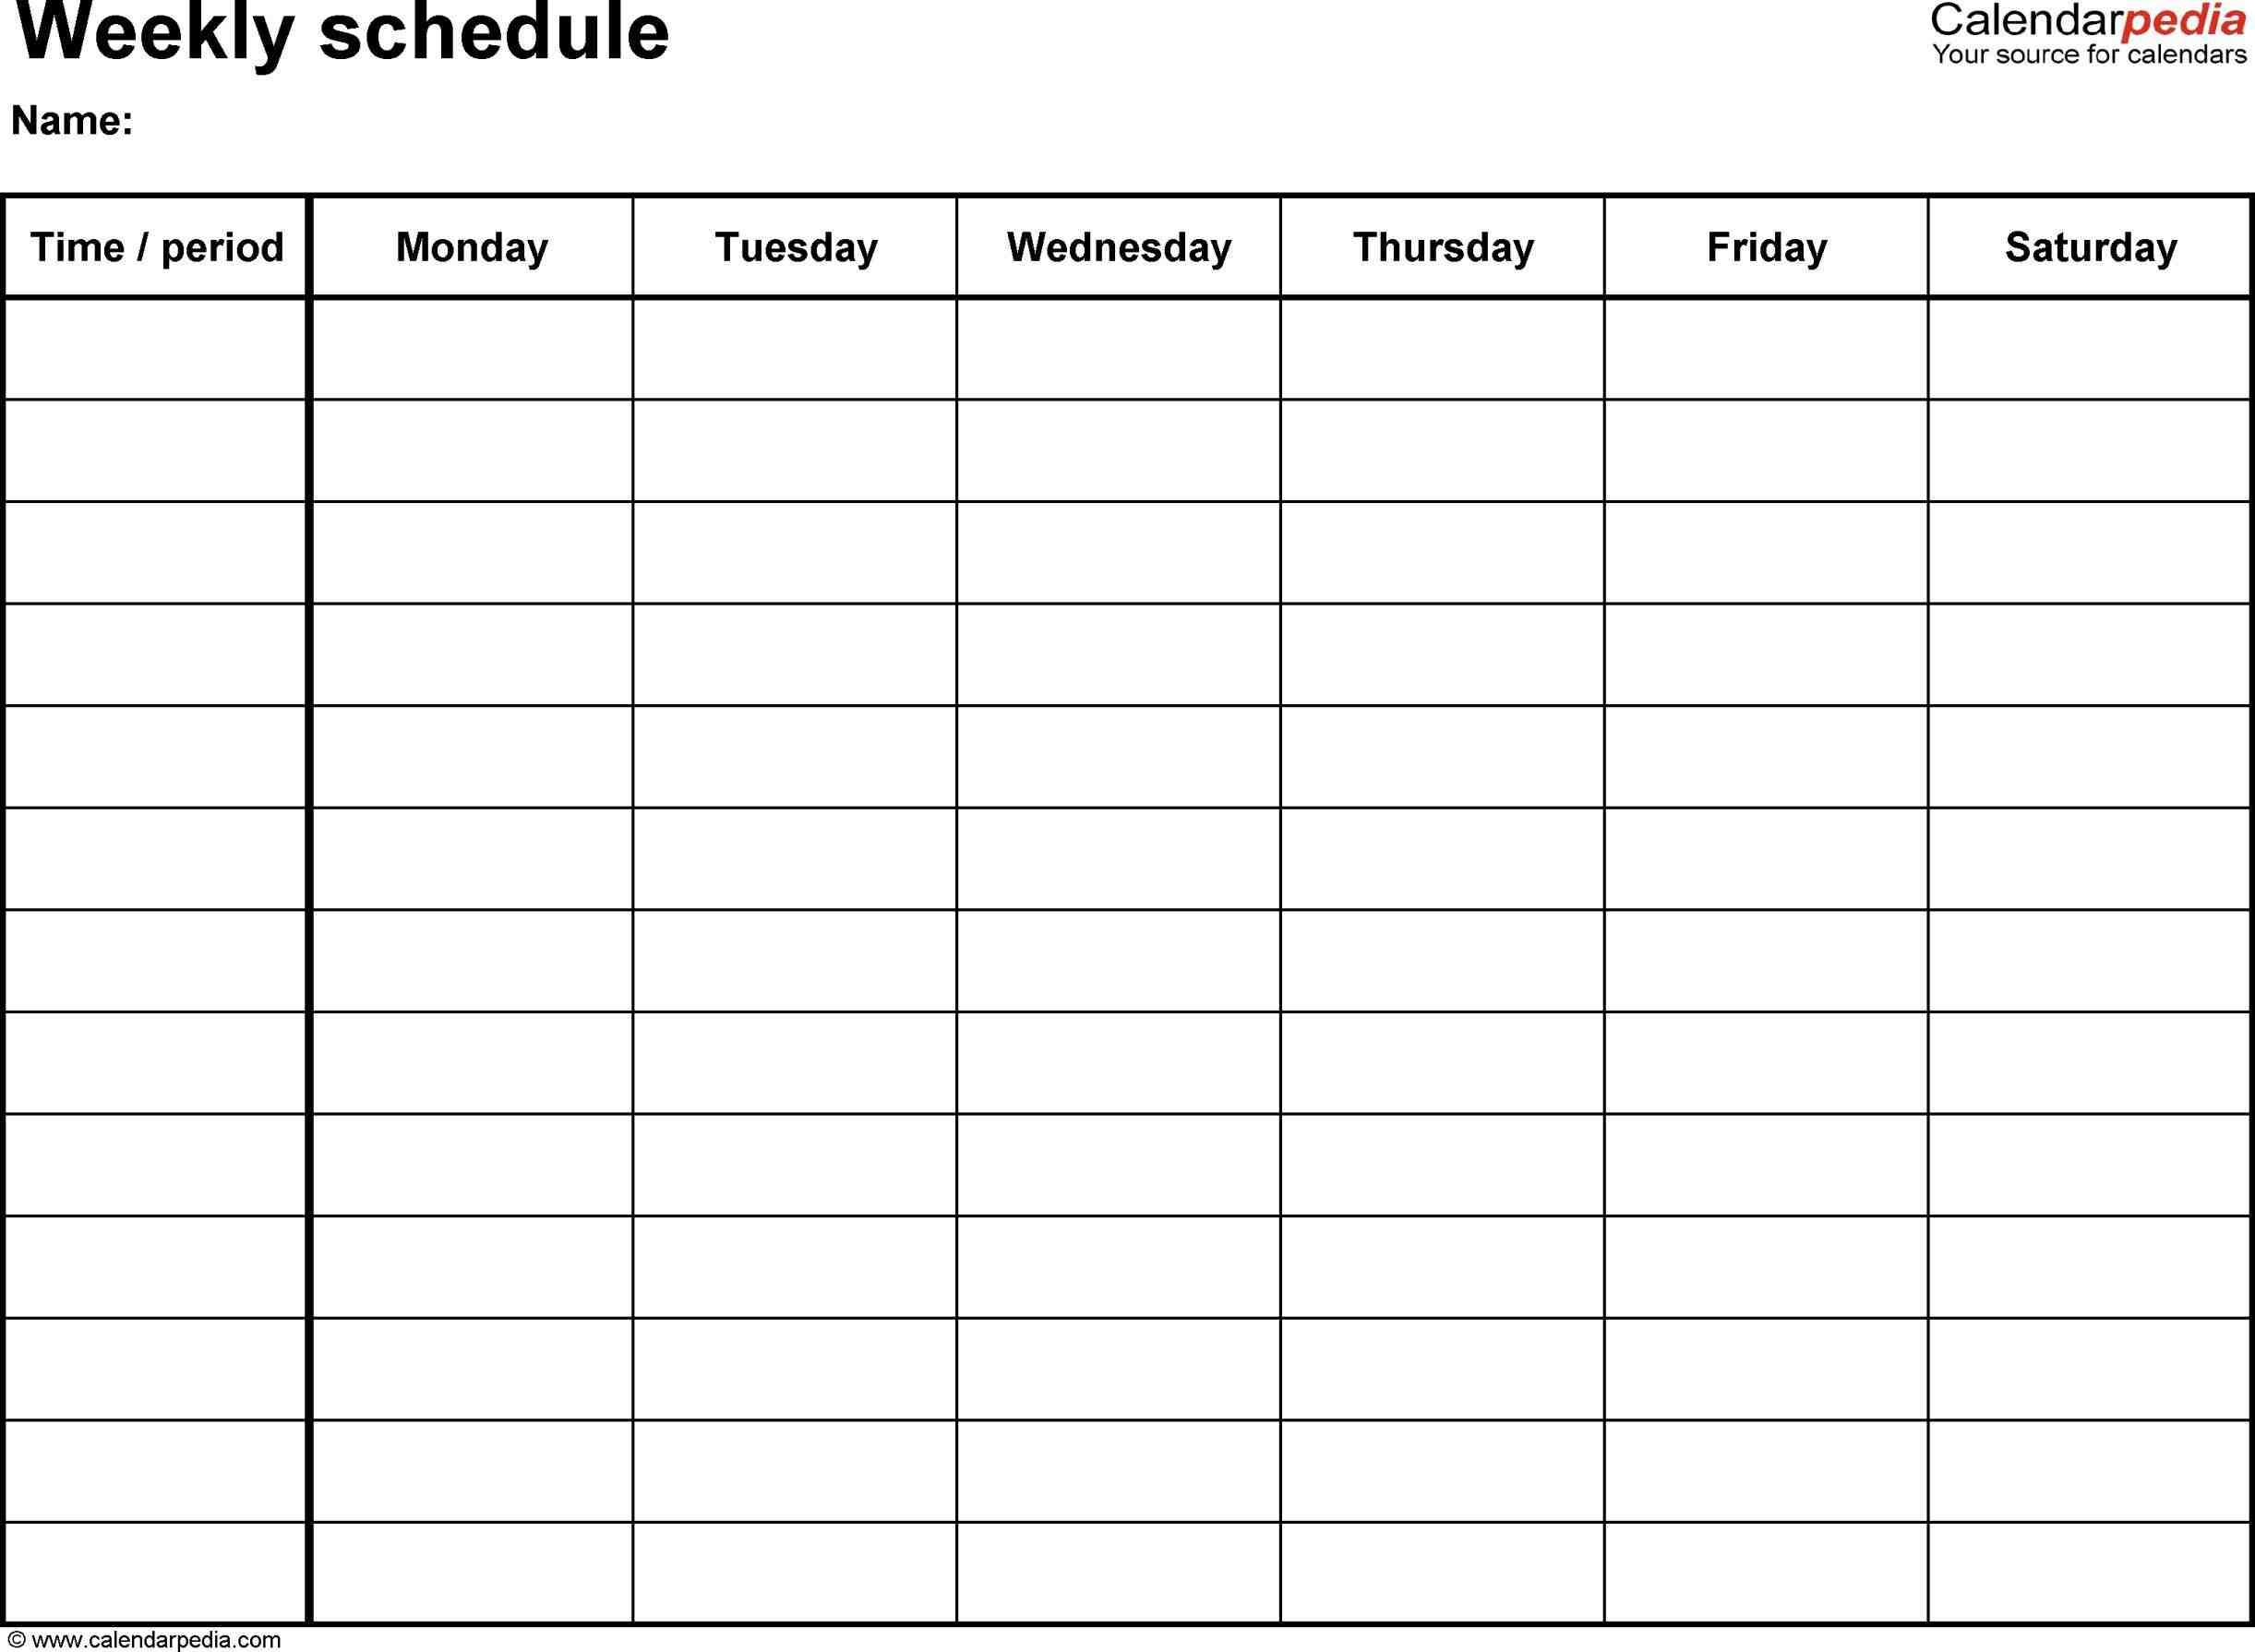 Weekly Class Schedule Maker Planner Template Free